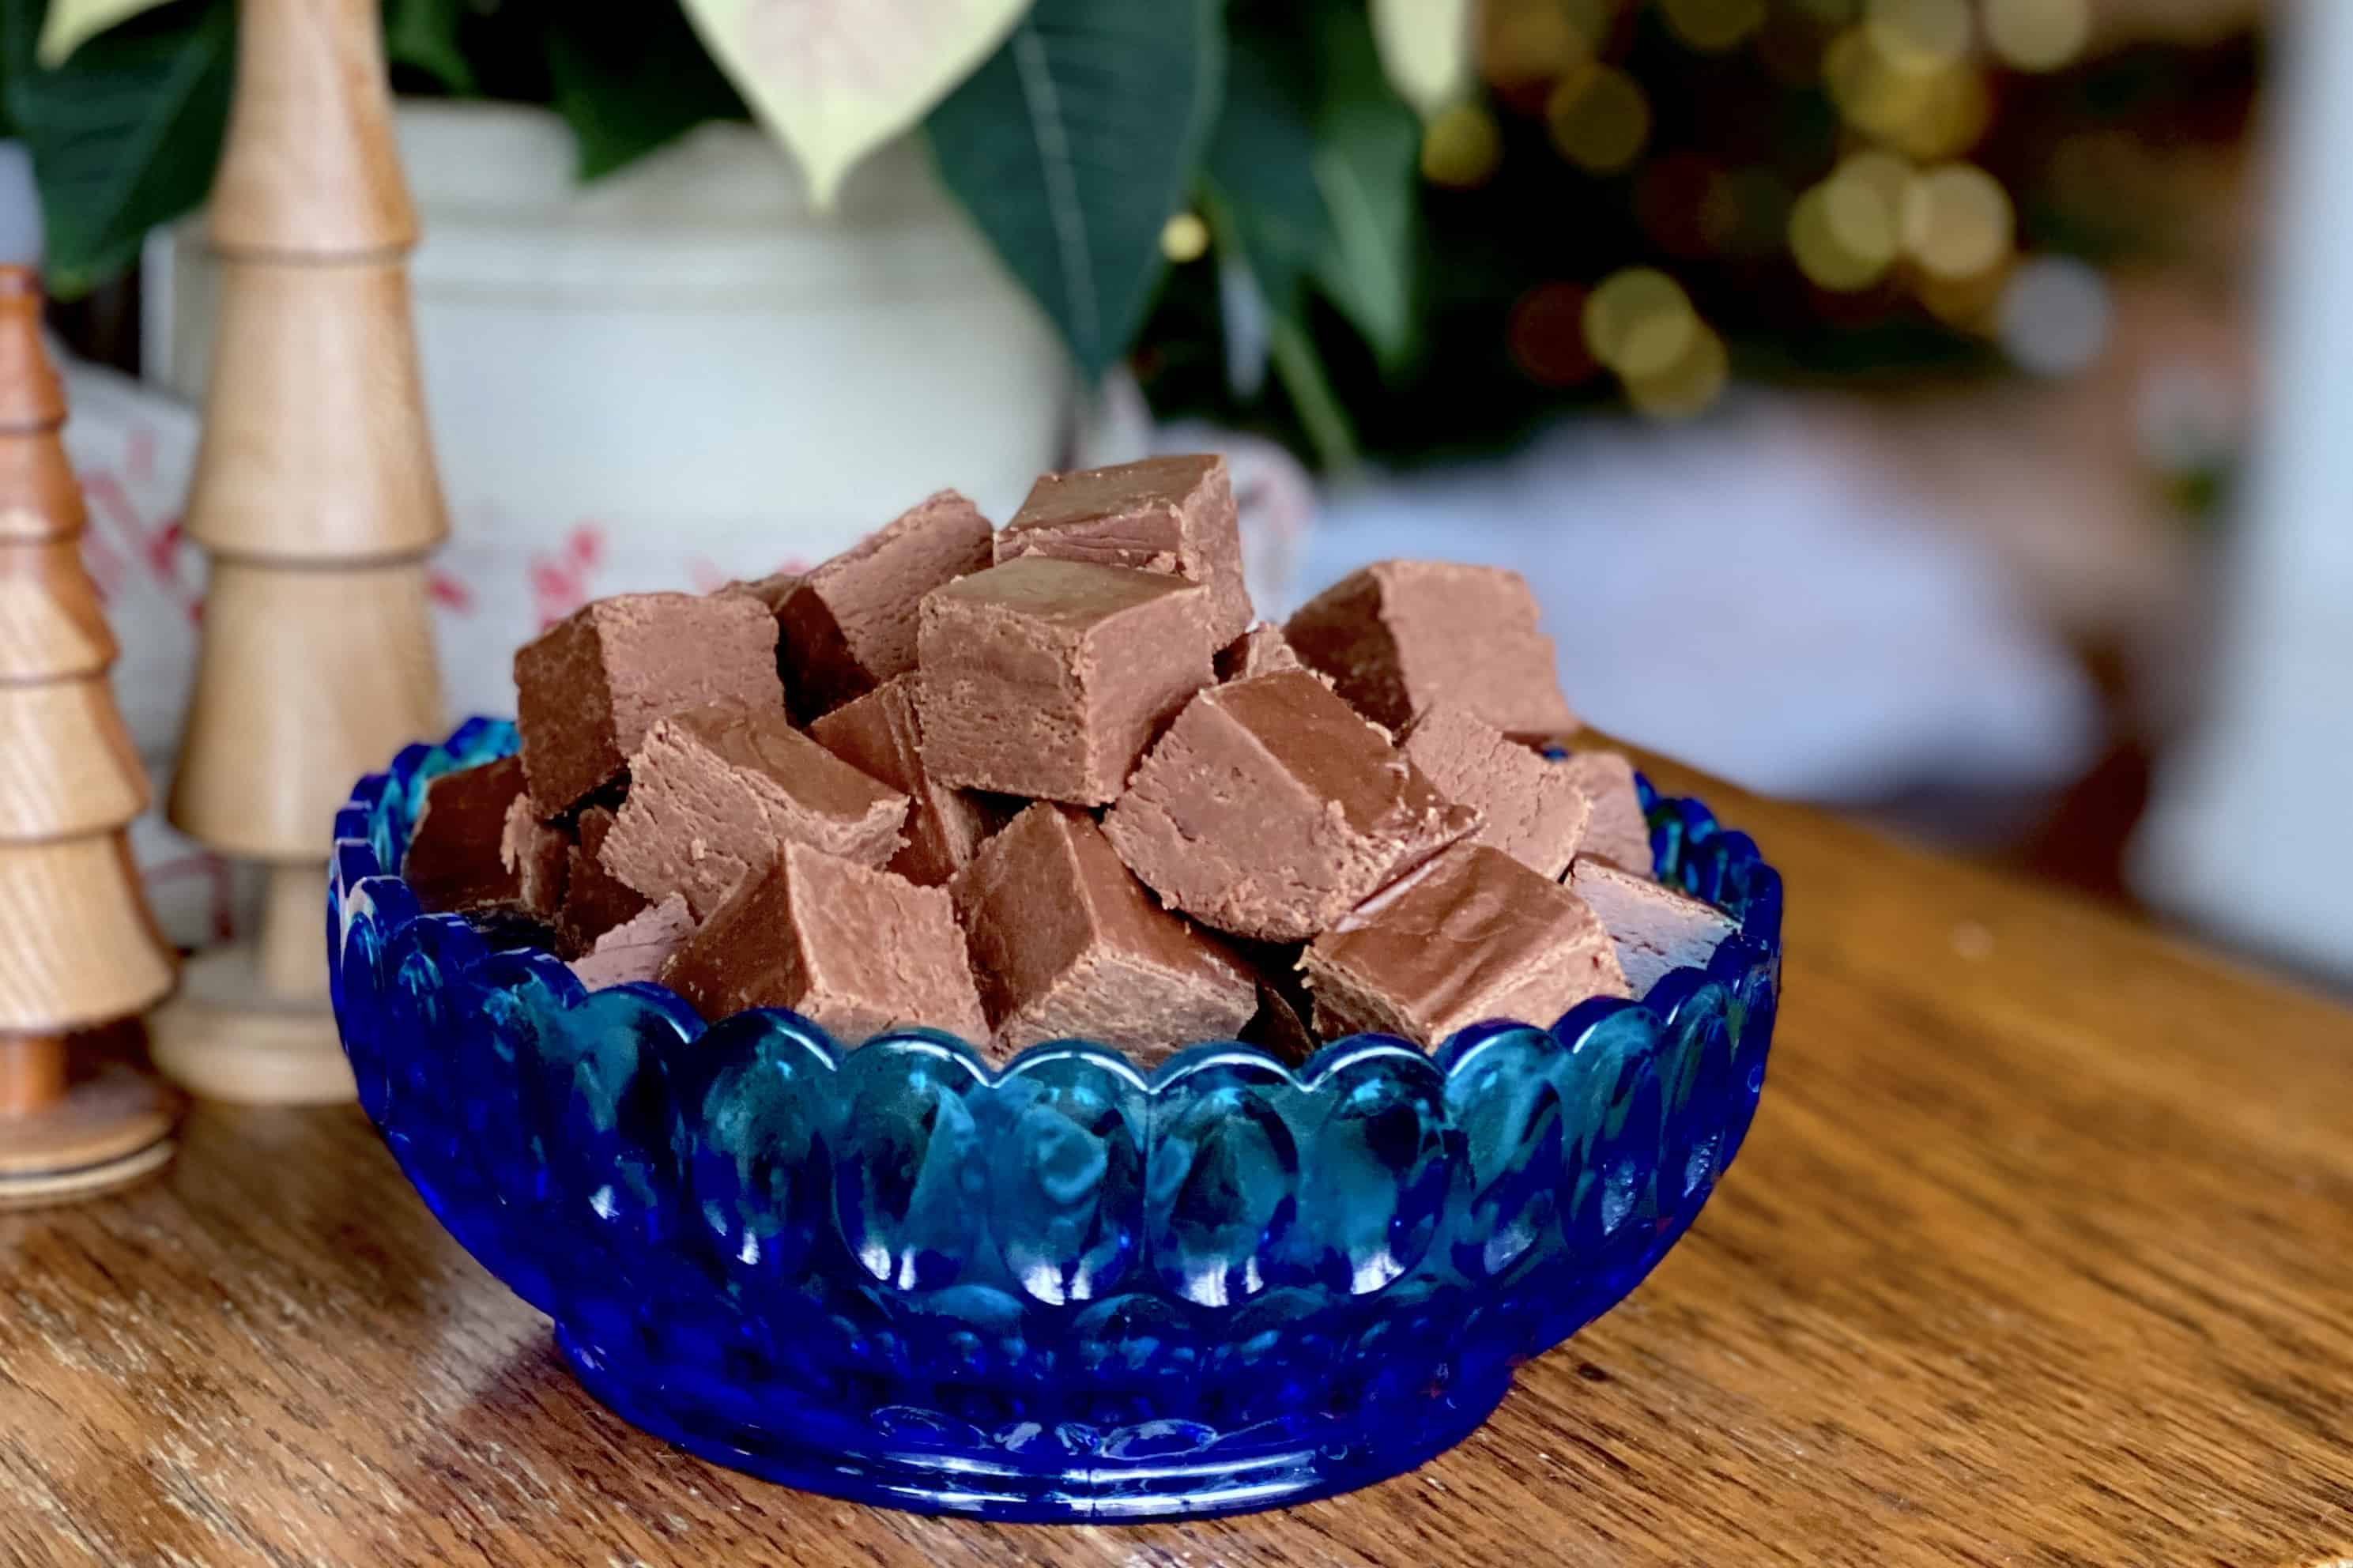 Fudge and the Blue Bowl